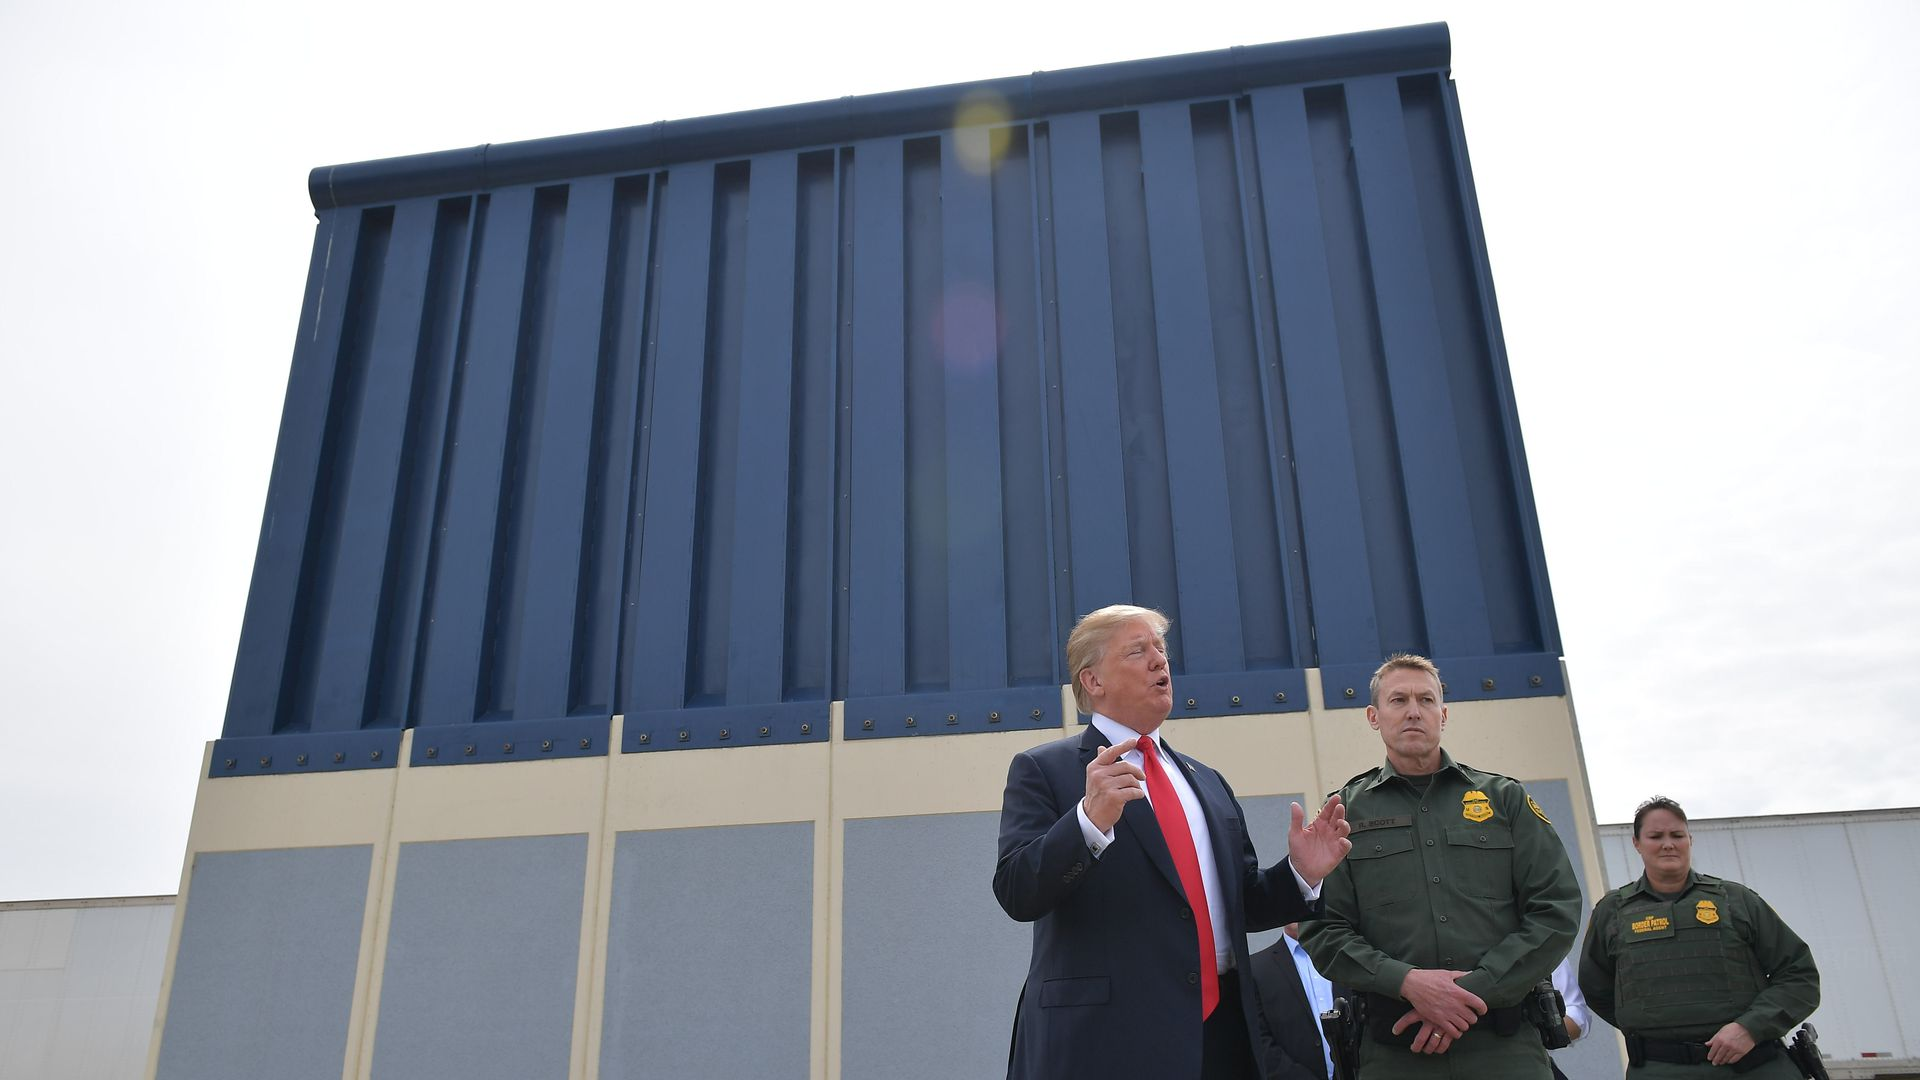 Trump stands and talks in front of a blue prototype of his border wall, next to two border patrol officials.